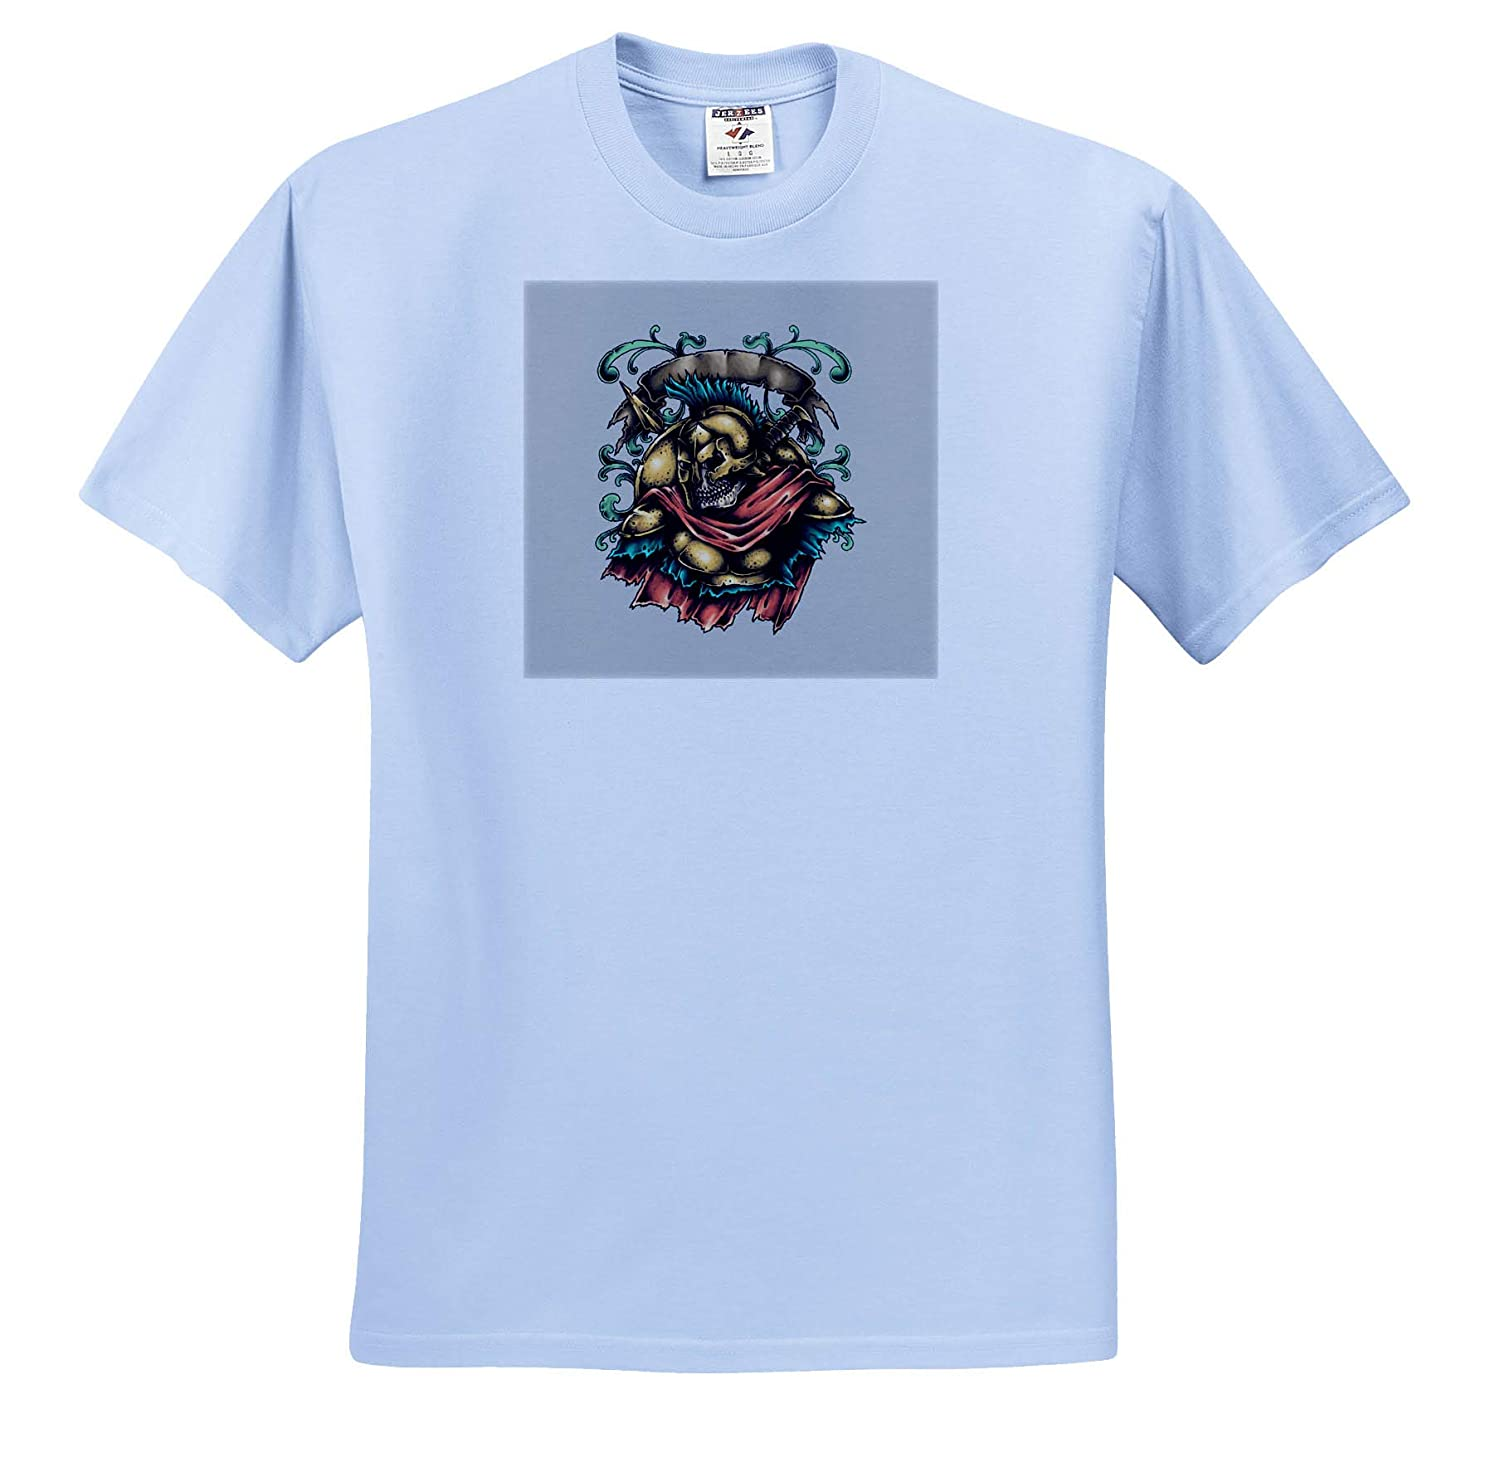 Skull T-Shirts 3dRose Alexis Design Colorful Image of Skull and Ancient Greek Armor